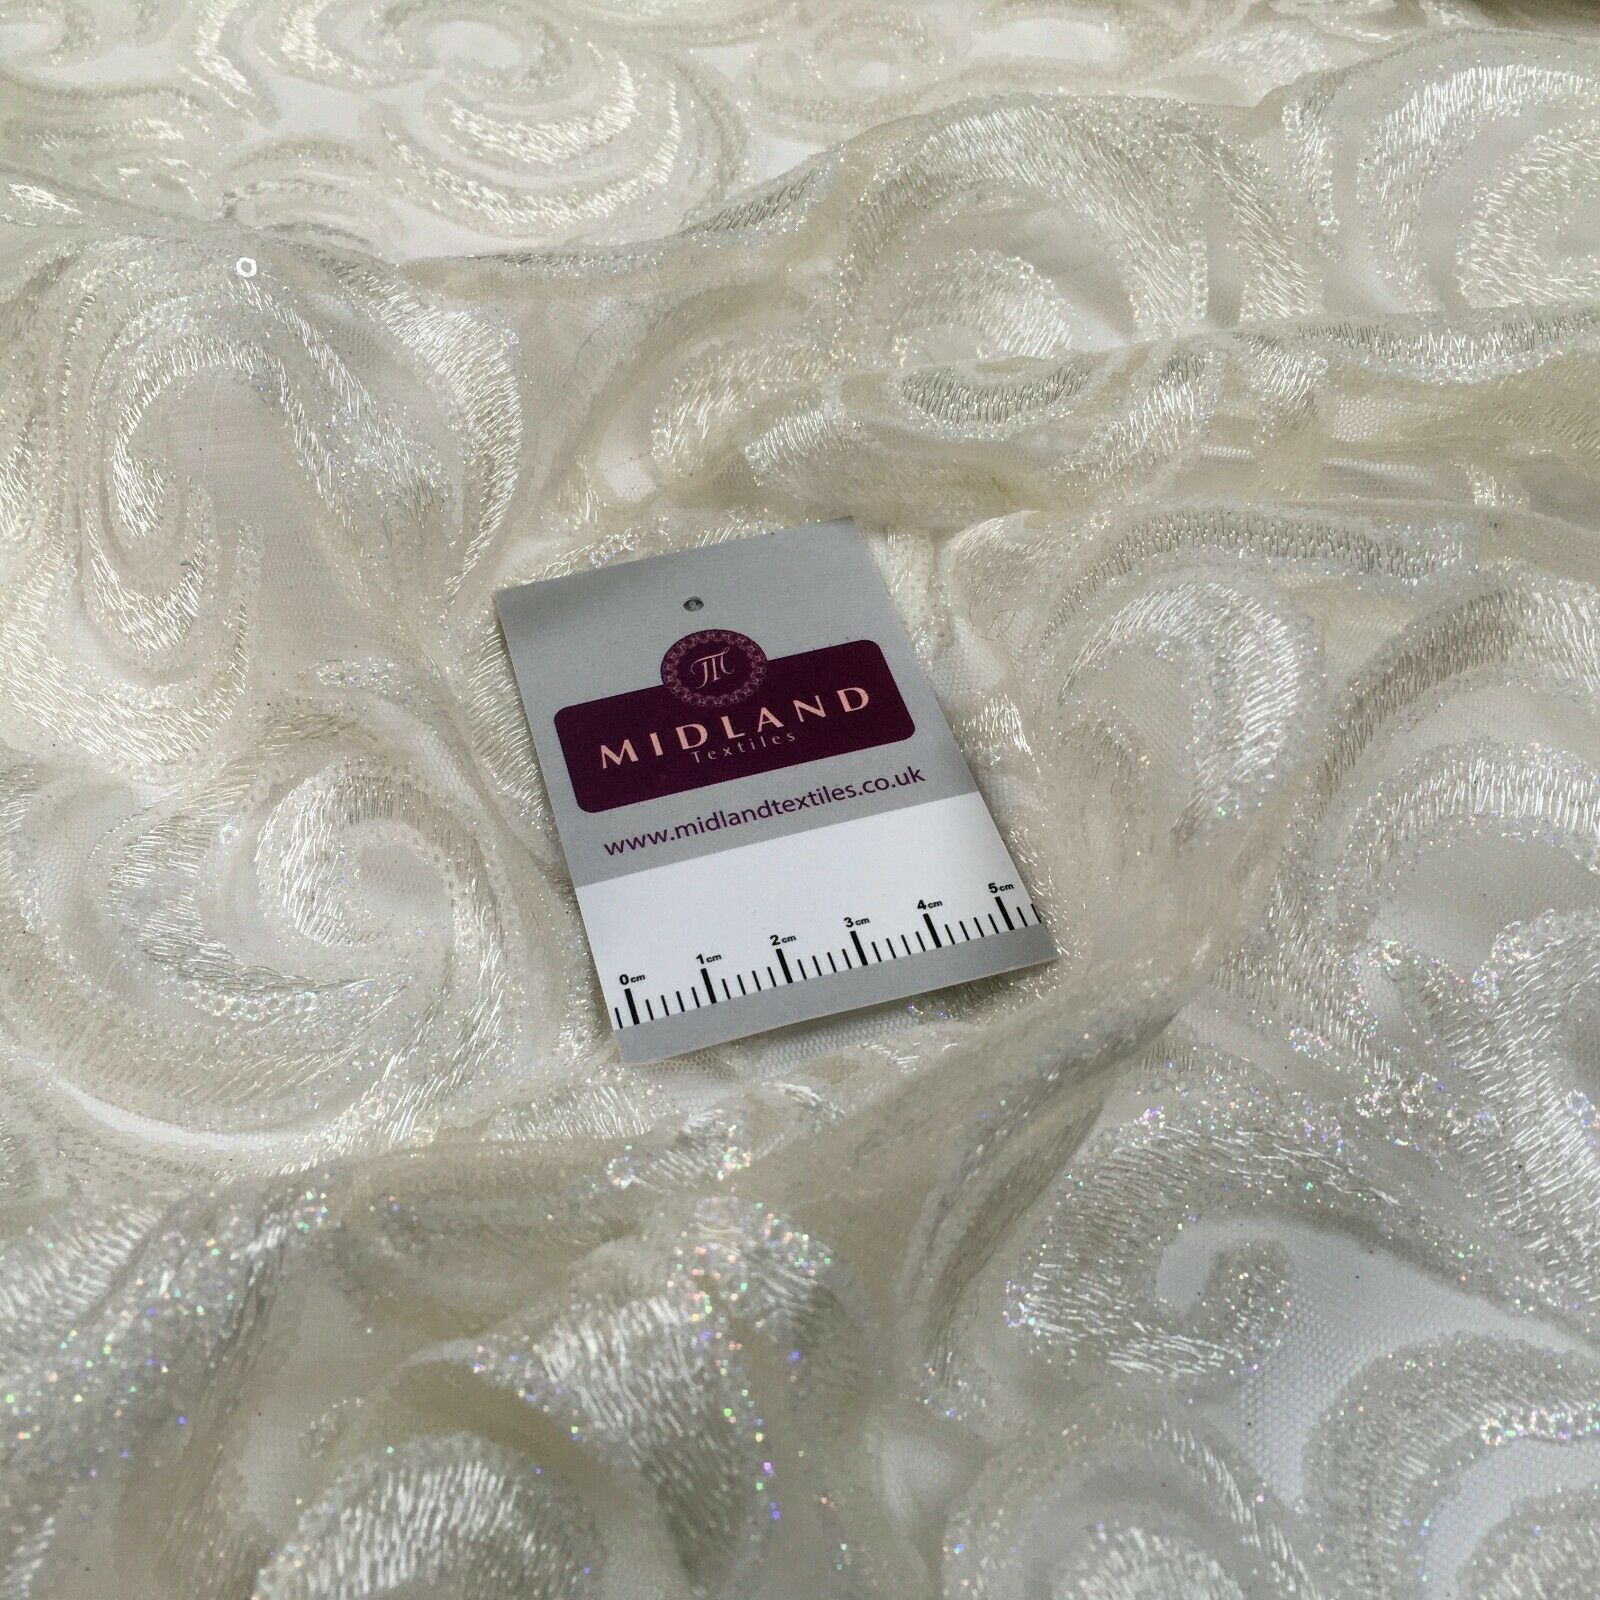 Cream Swirl Wedding Tulle Net Dress Fabric 127cm MK1379 Mtex